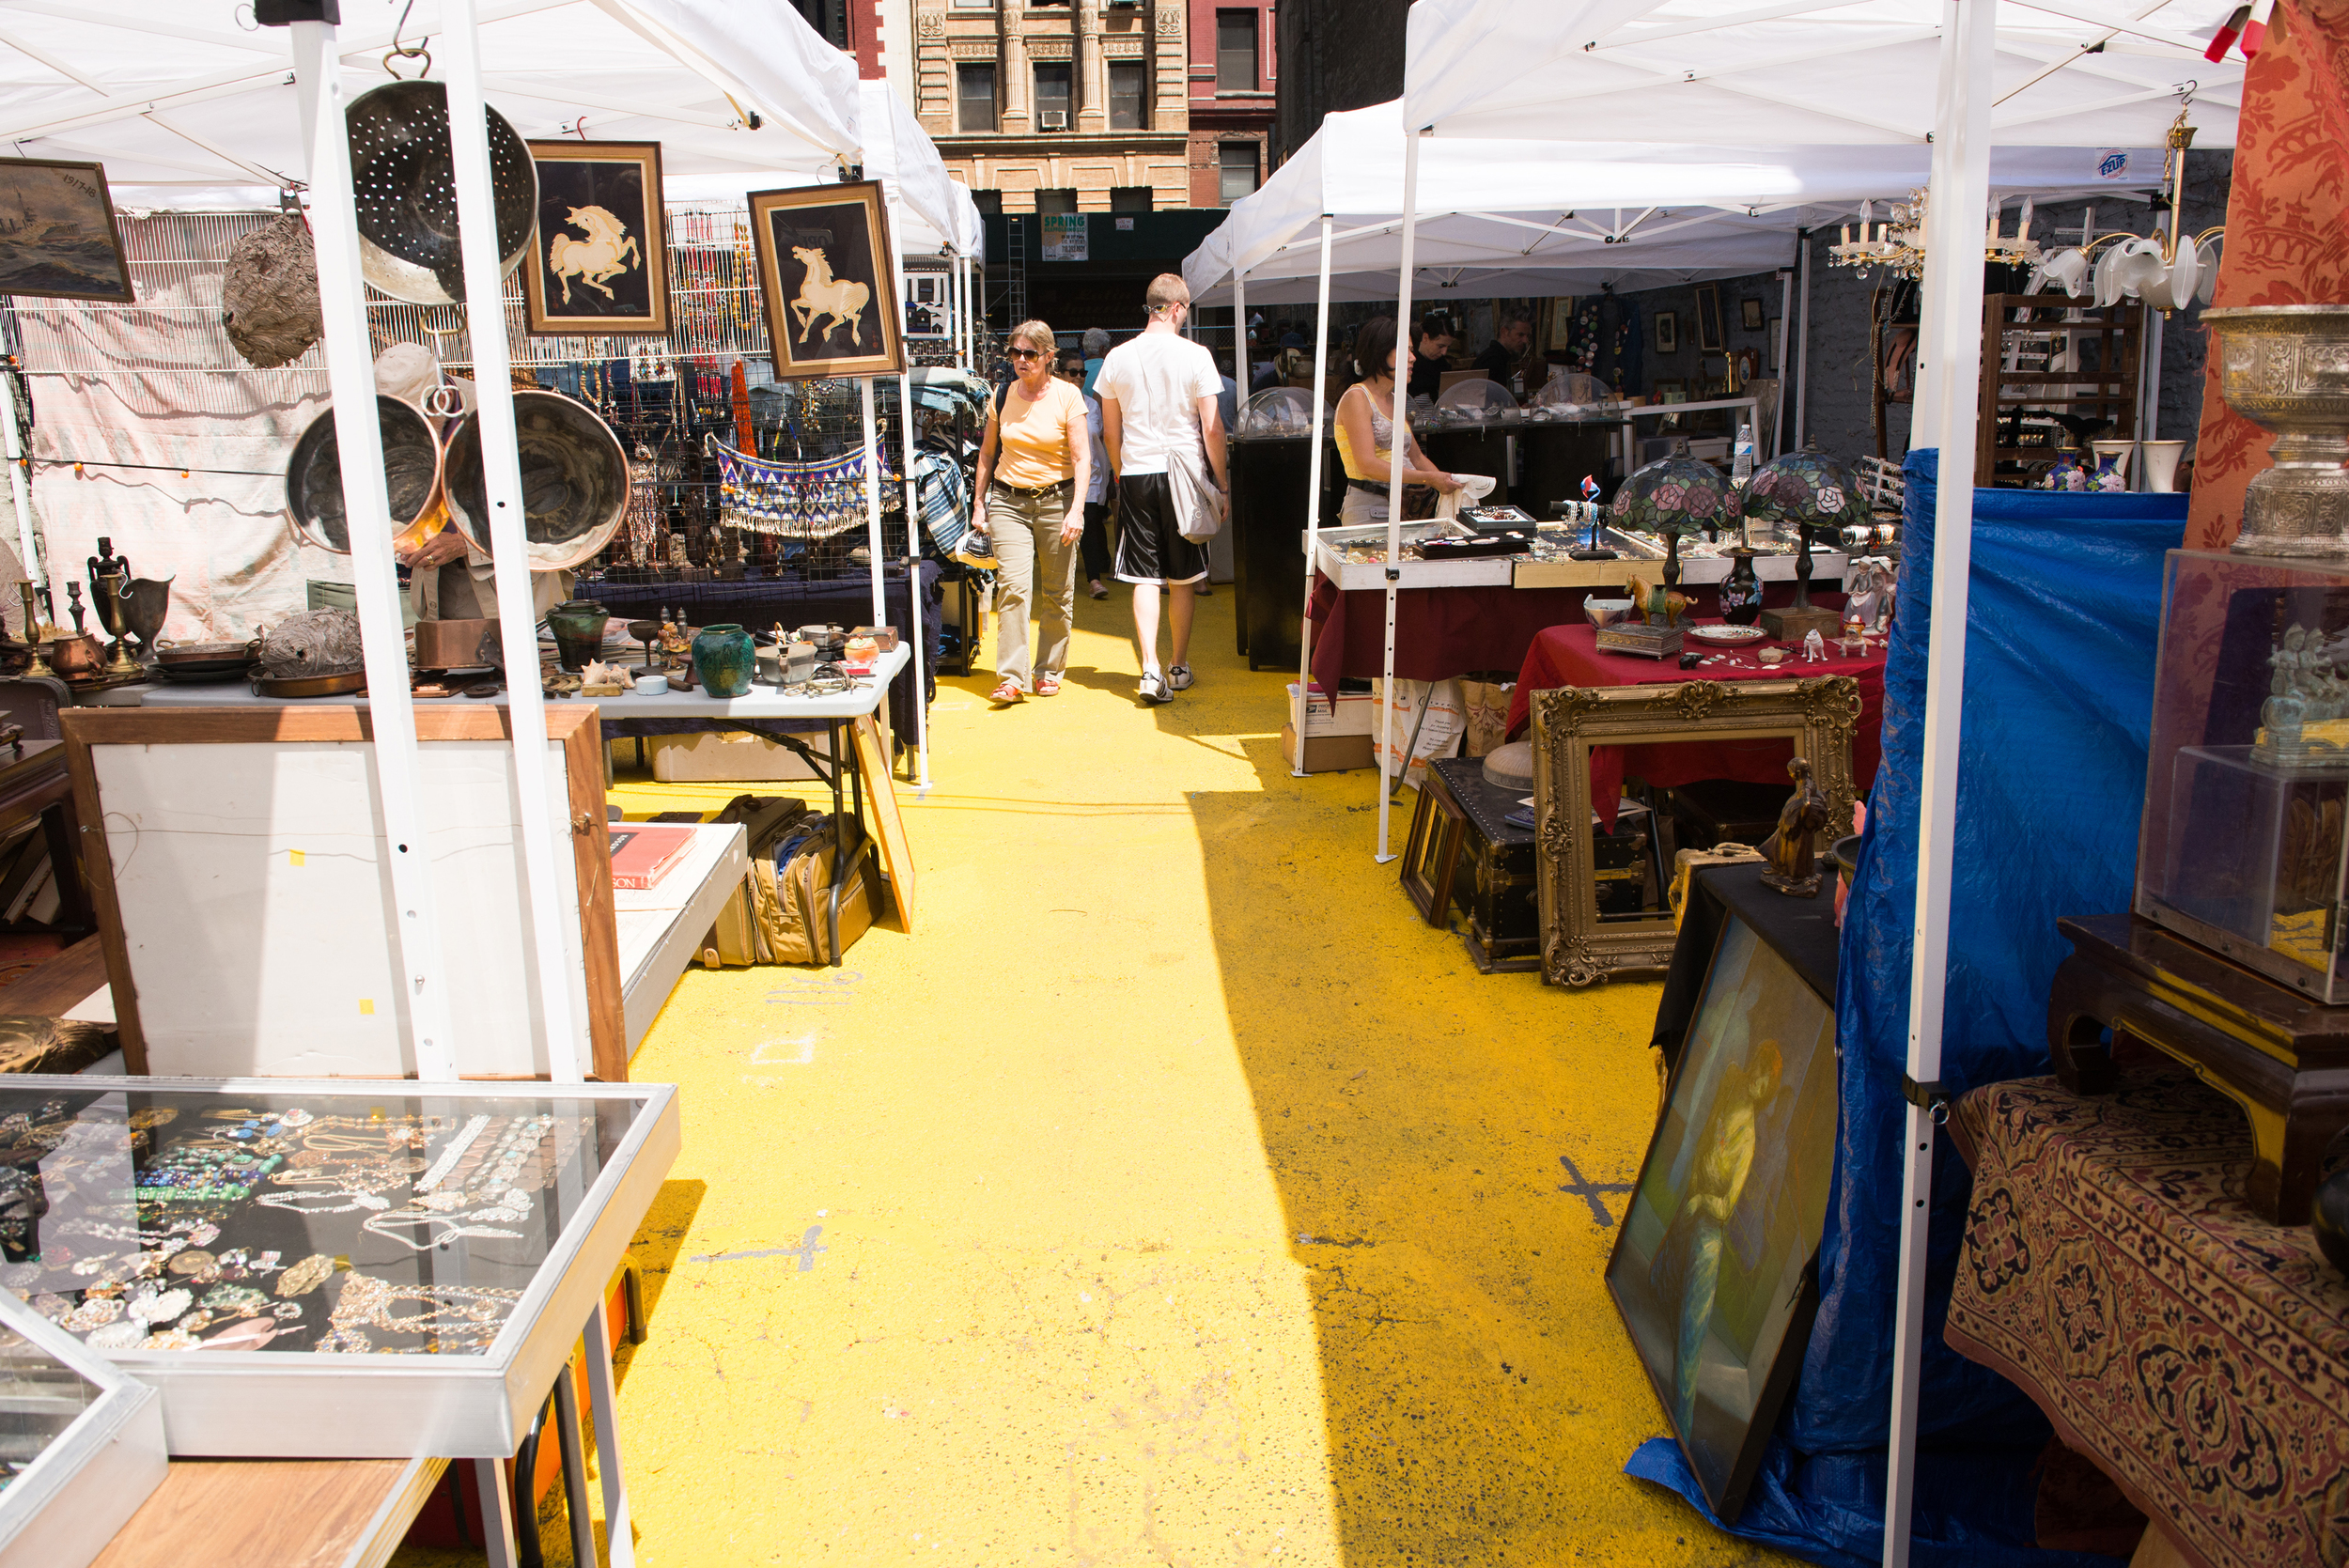 An insiders view of the 'yellow brick alley' at Chelsea Flea Market